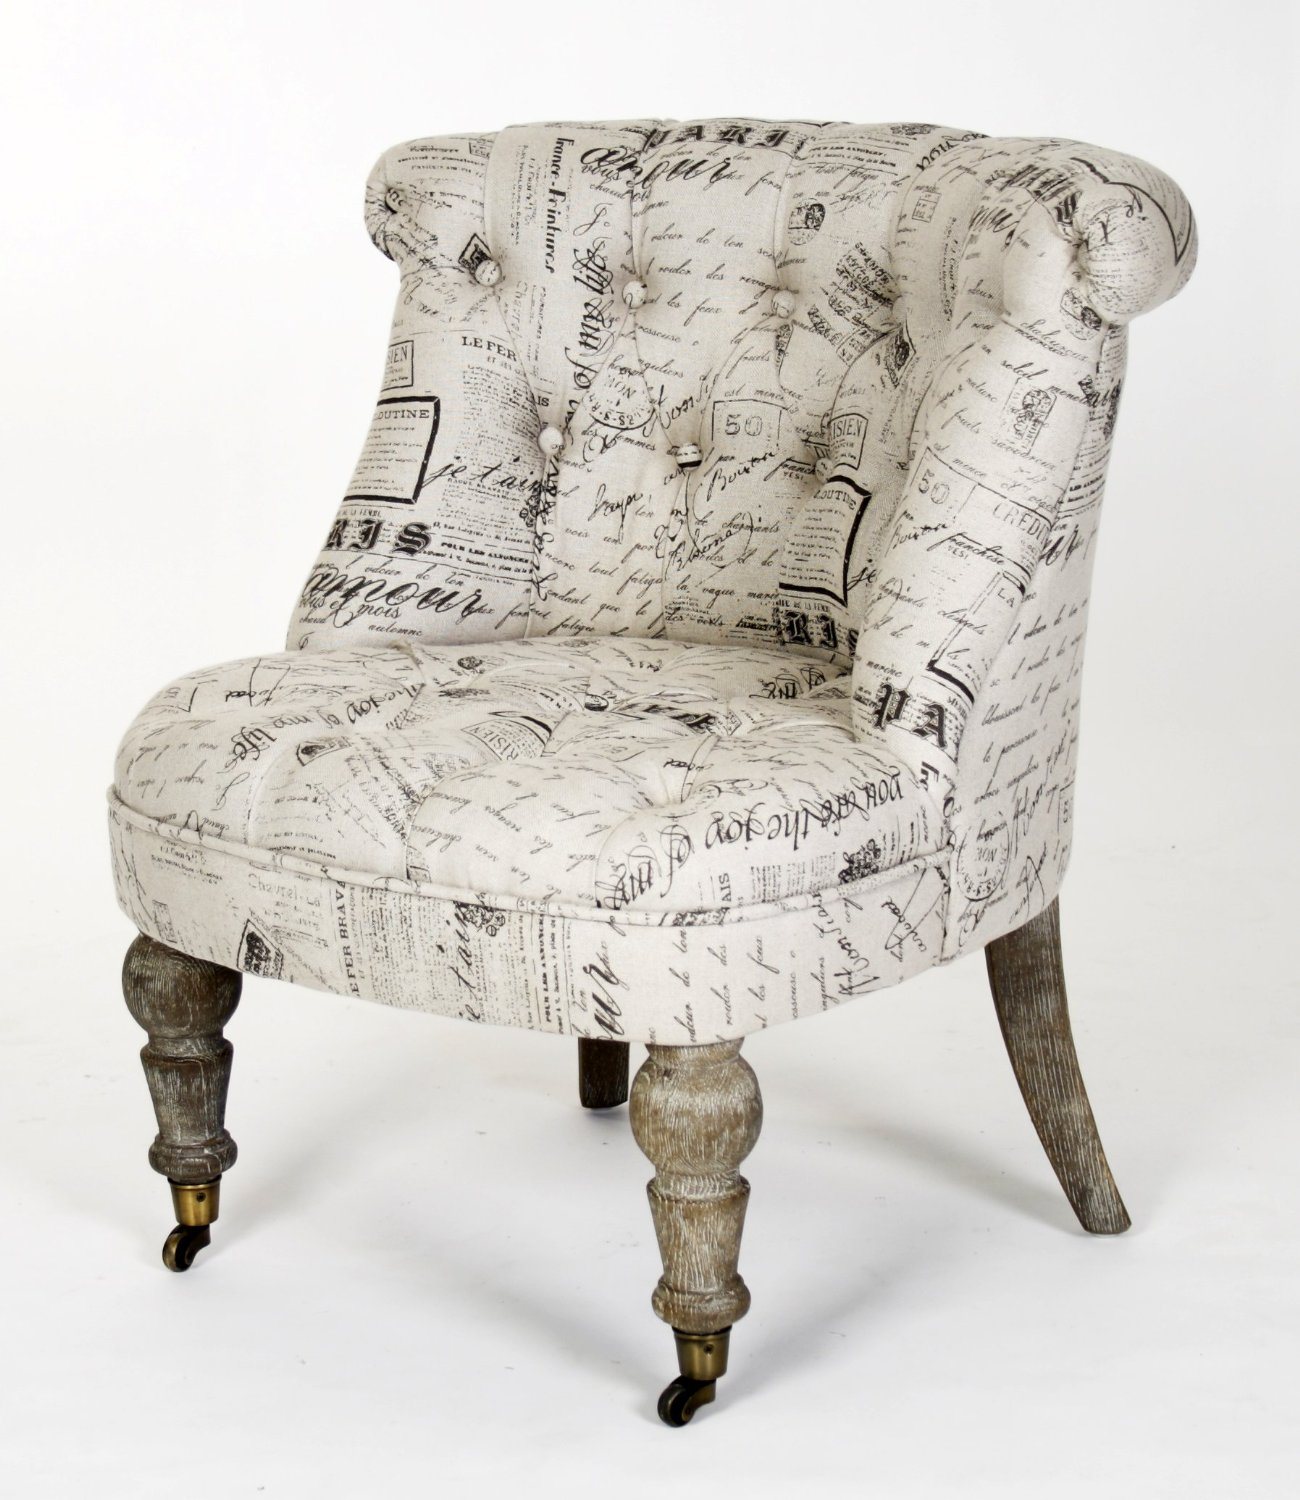 French Script Chair My Twig And Twine Nest Who Doesn 39t Love A Bargain